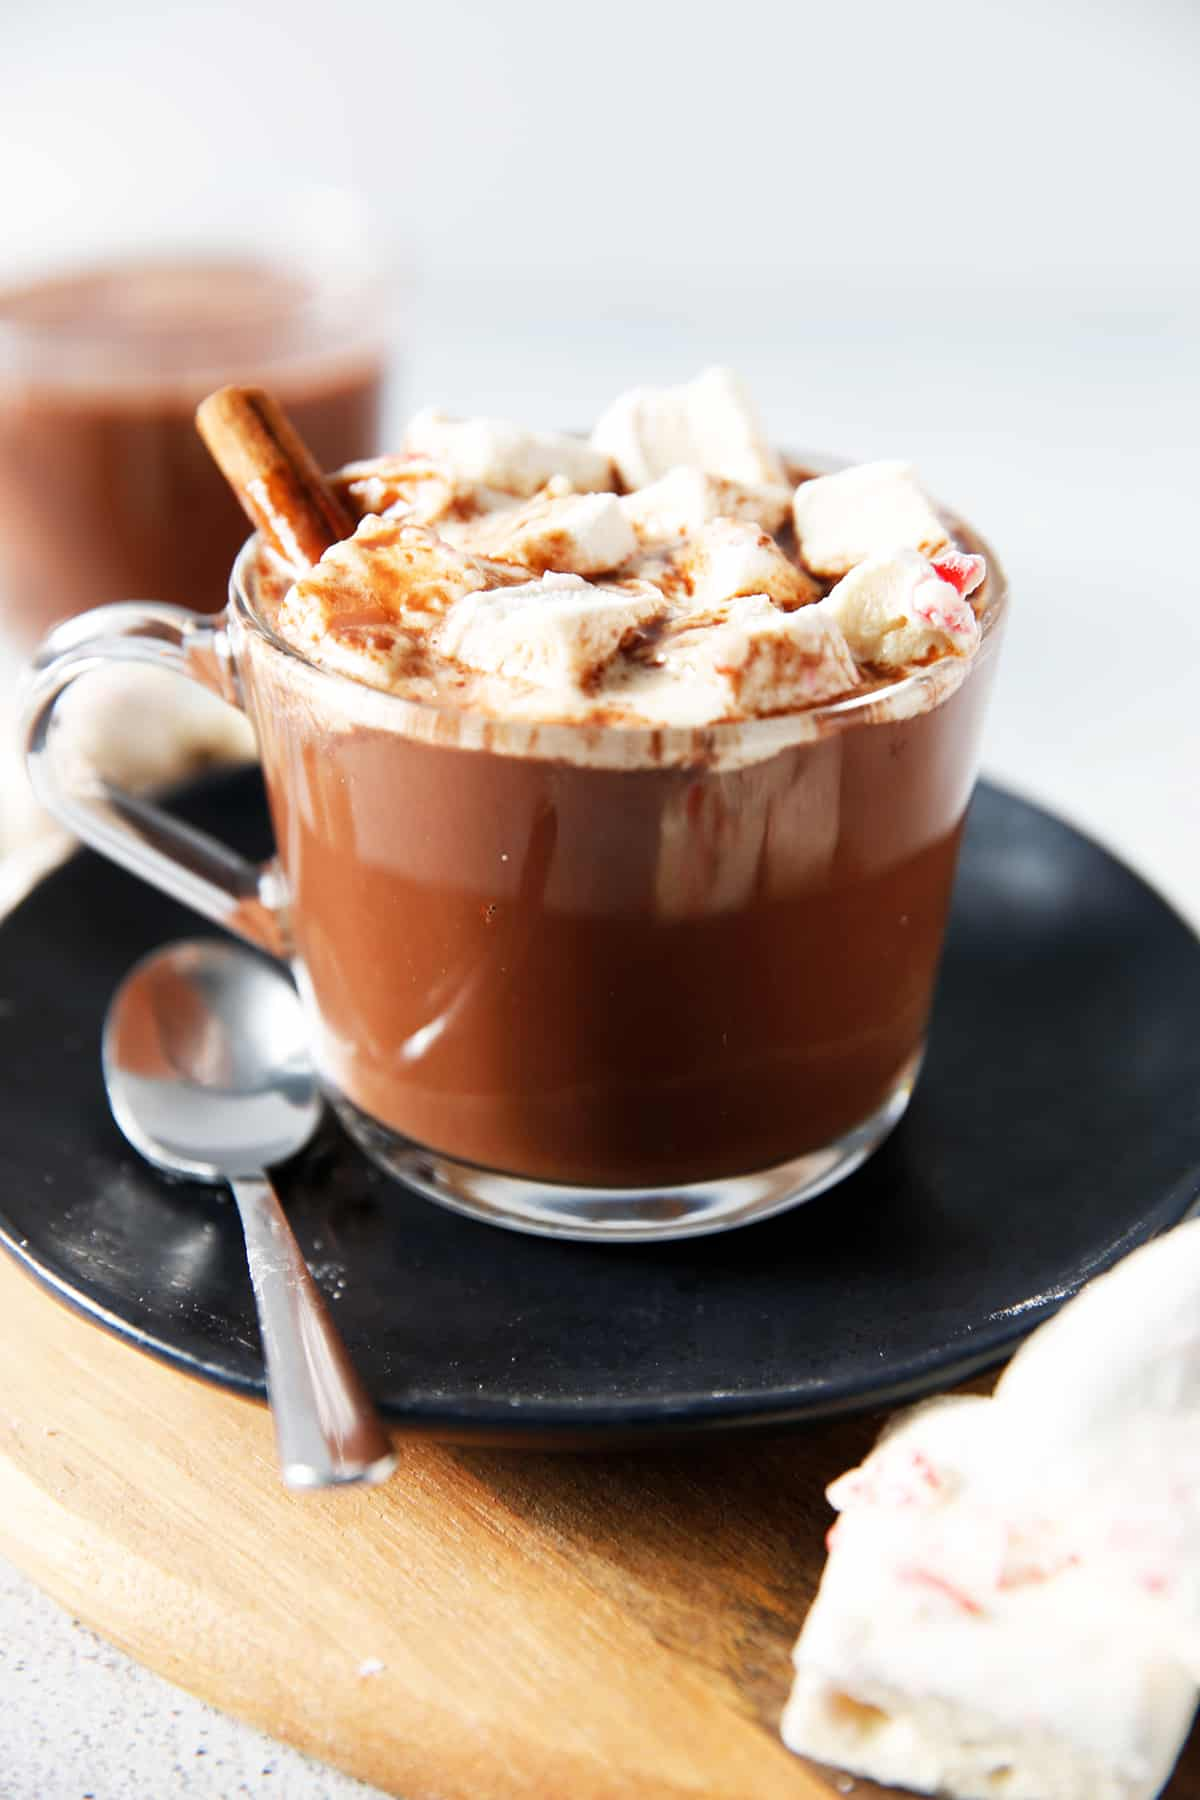 Dairy free hot chocolate with marshmallows in a mug